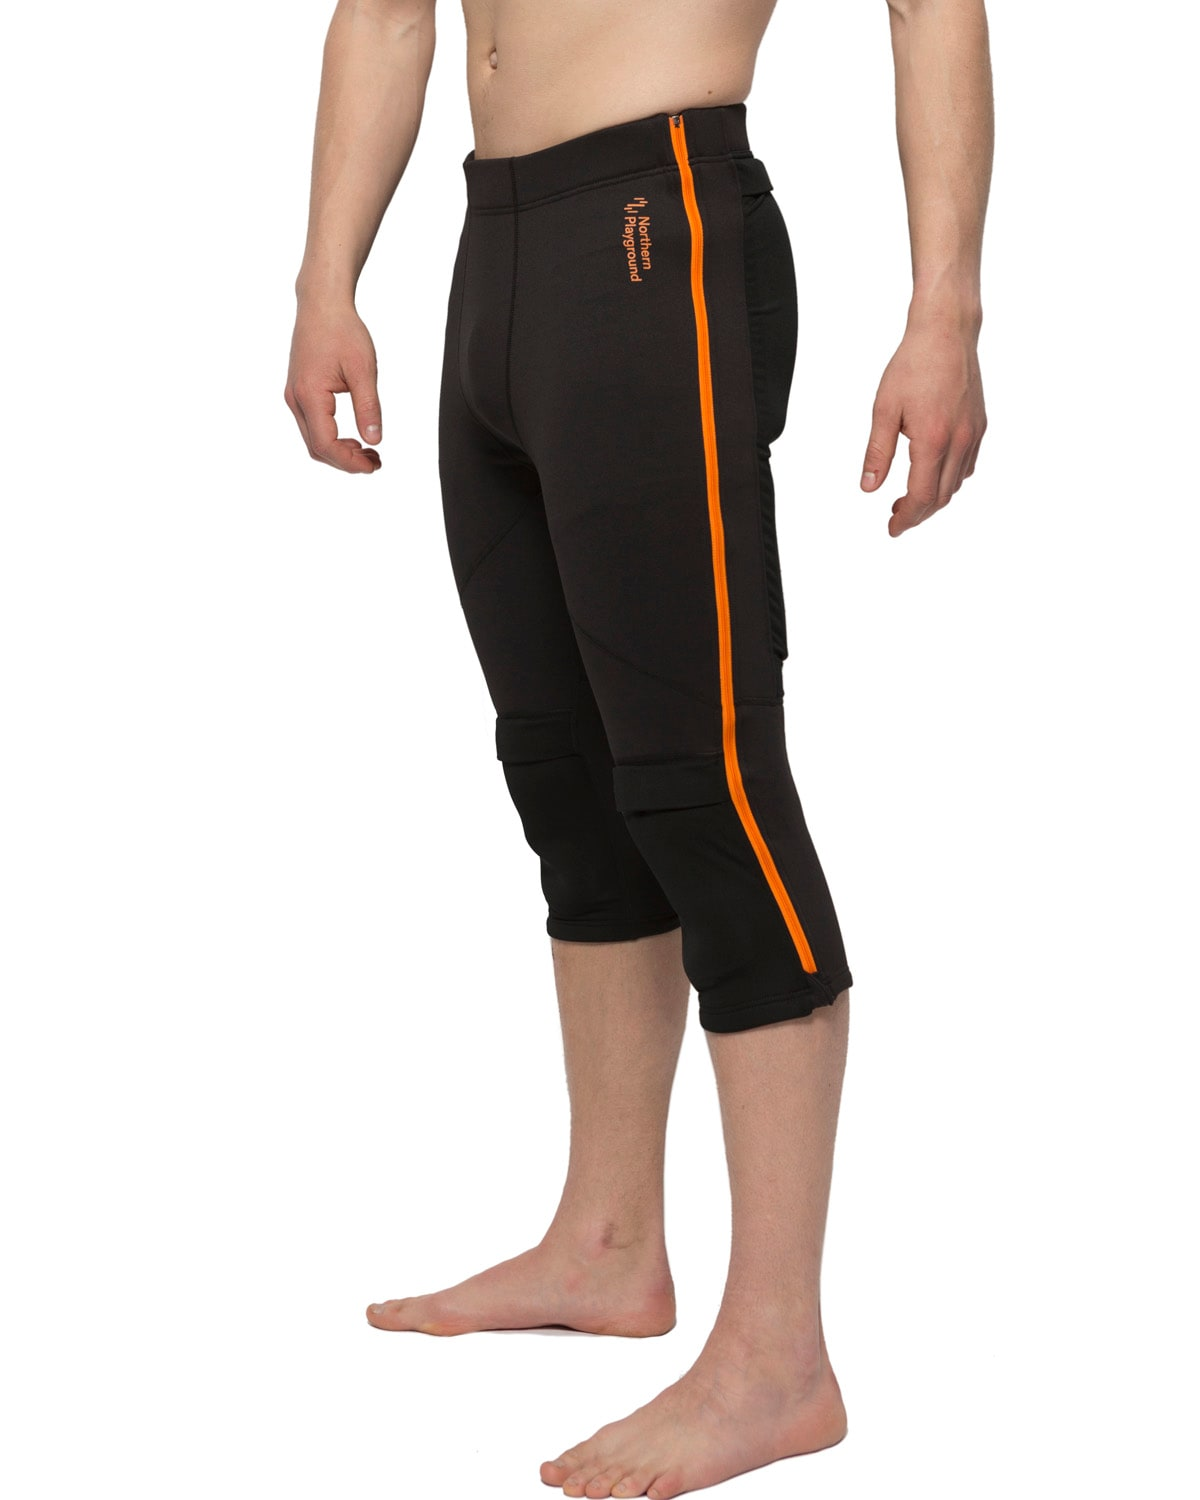 Northern Playground 3/4 Ziplongs™ padded M's